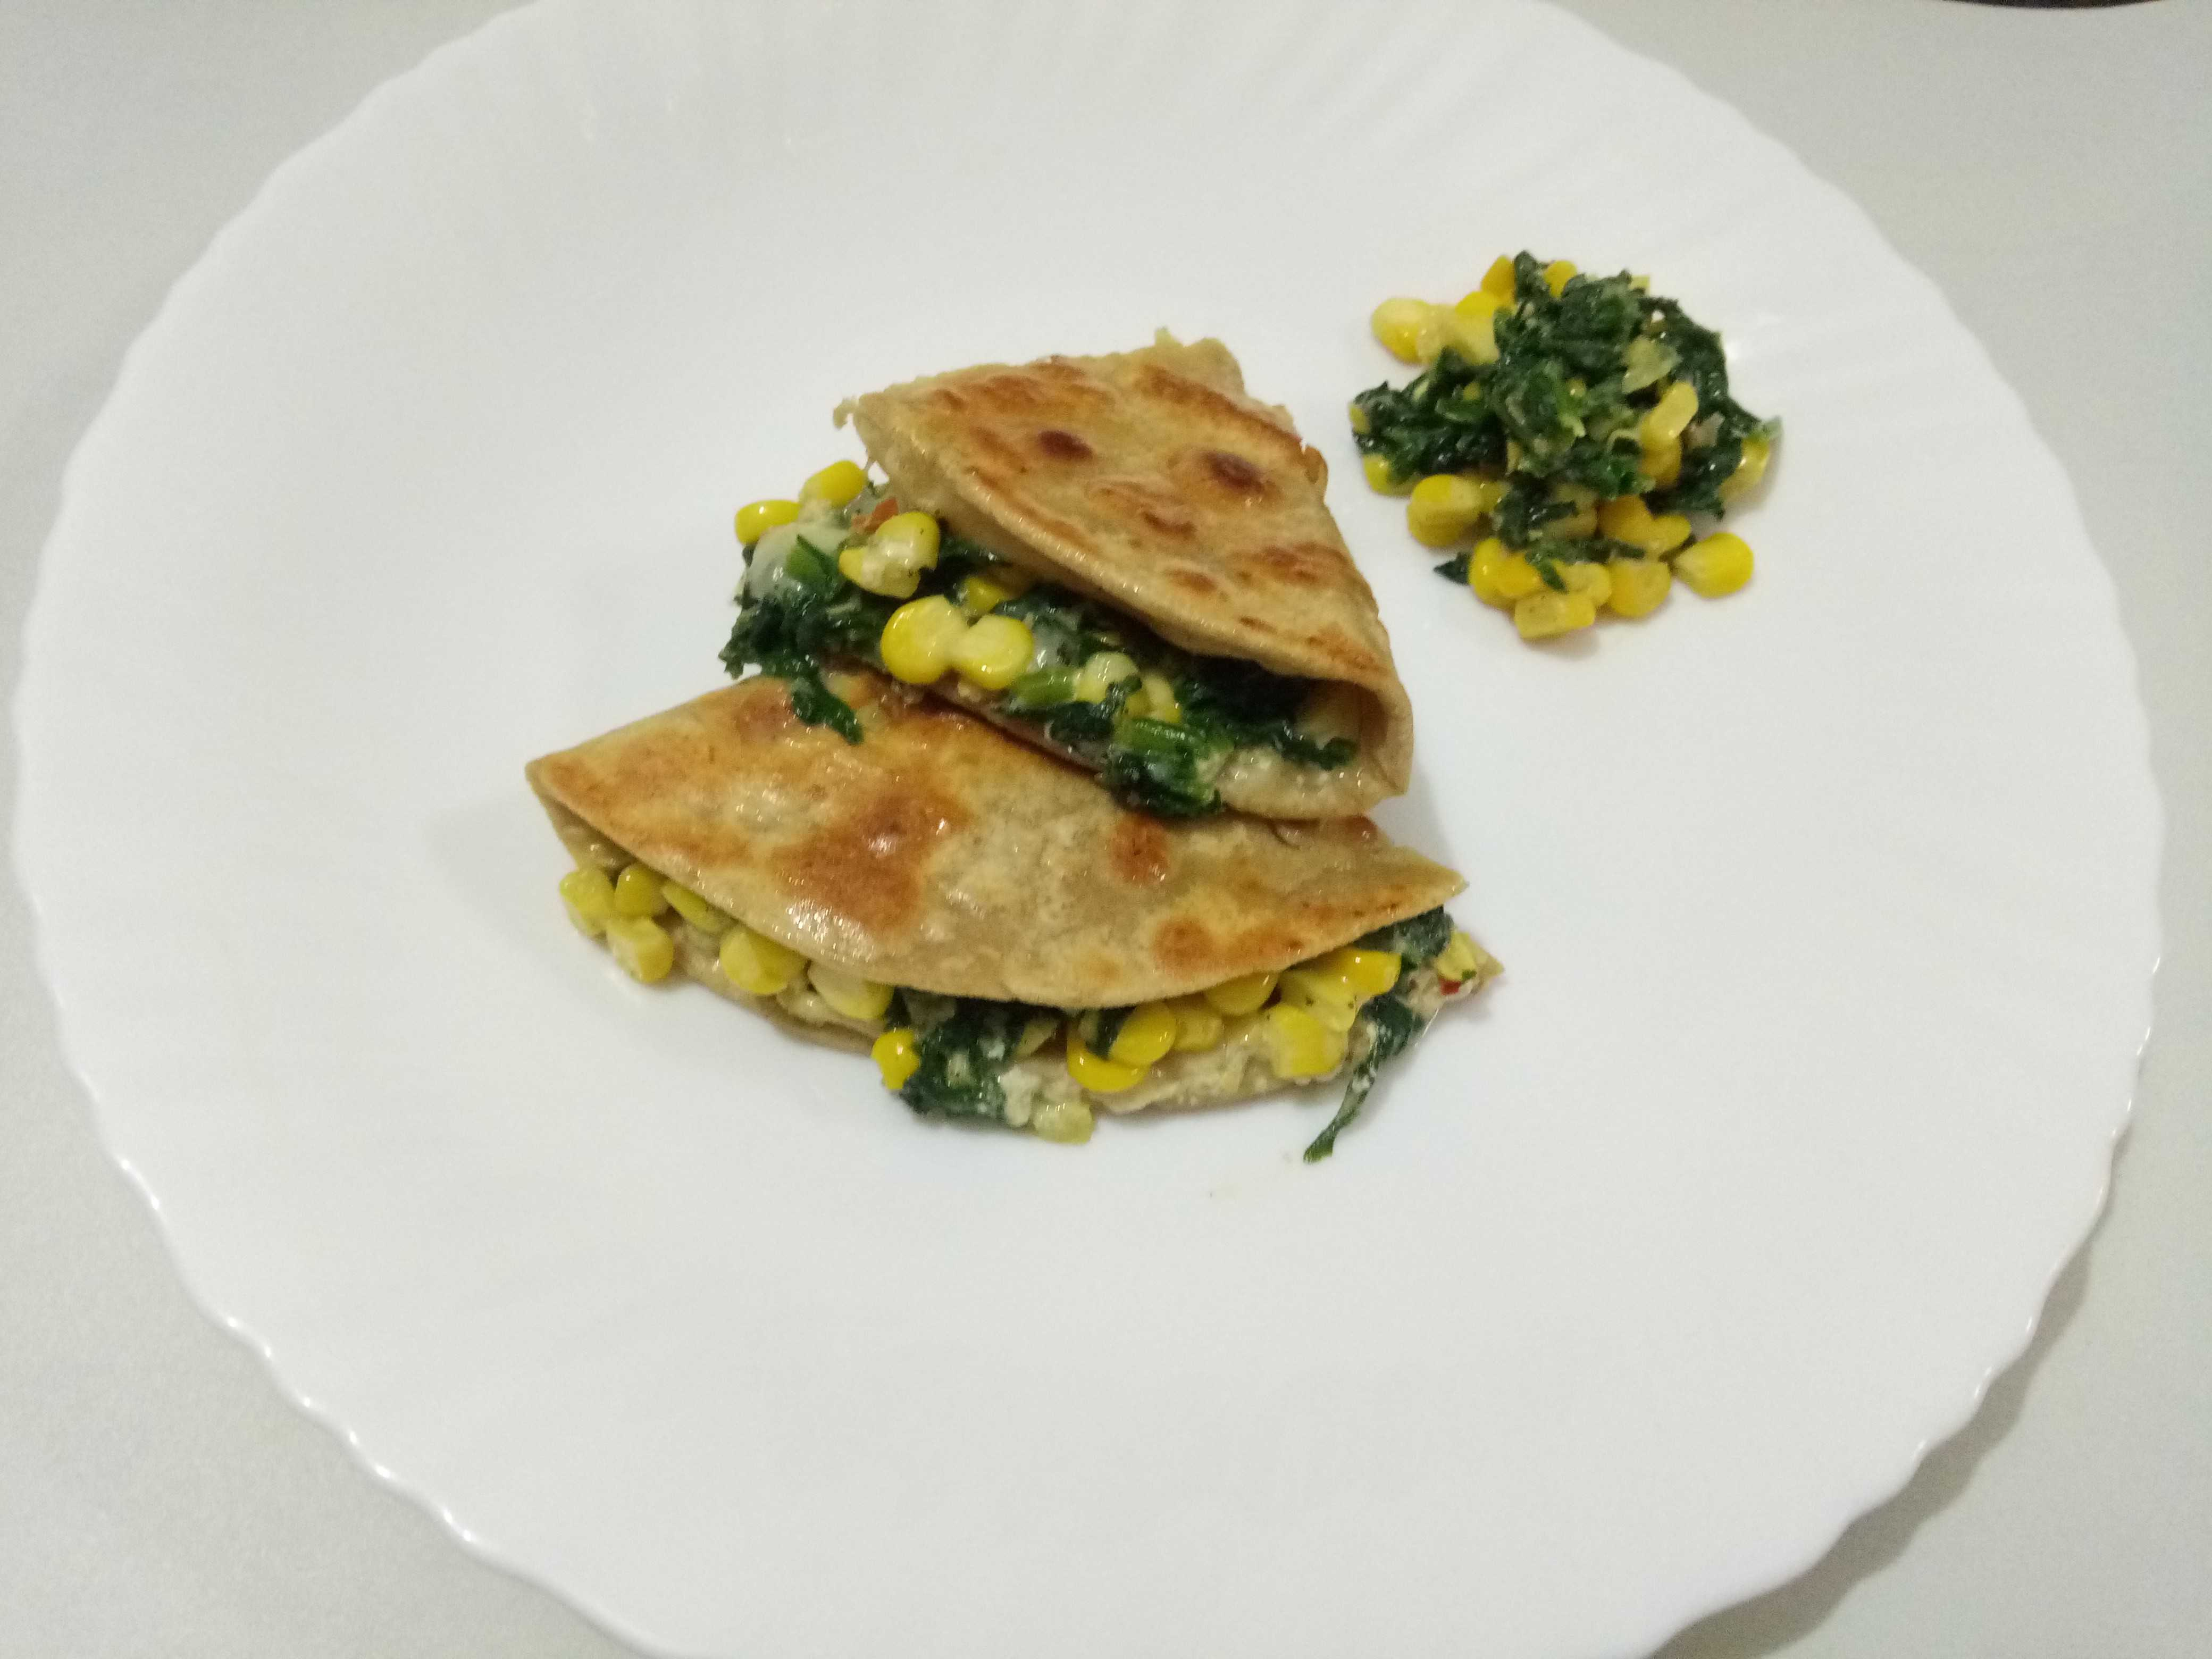 Cheese, corn and spinach Quesadilla (Mexican cuisine)